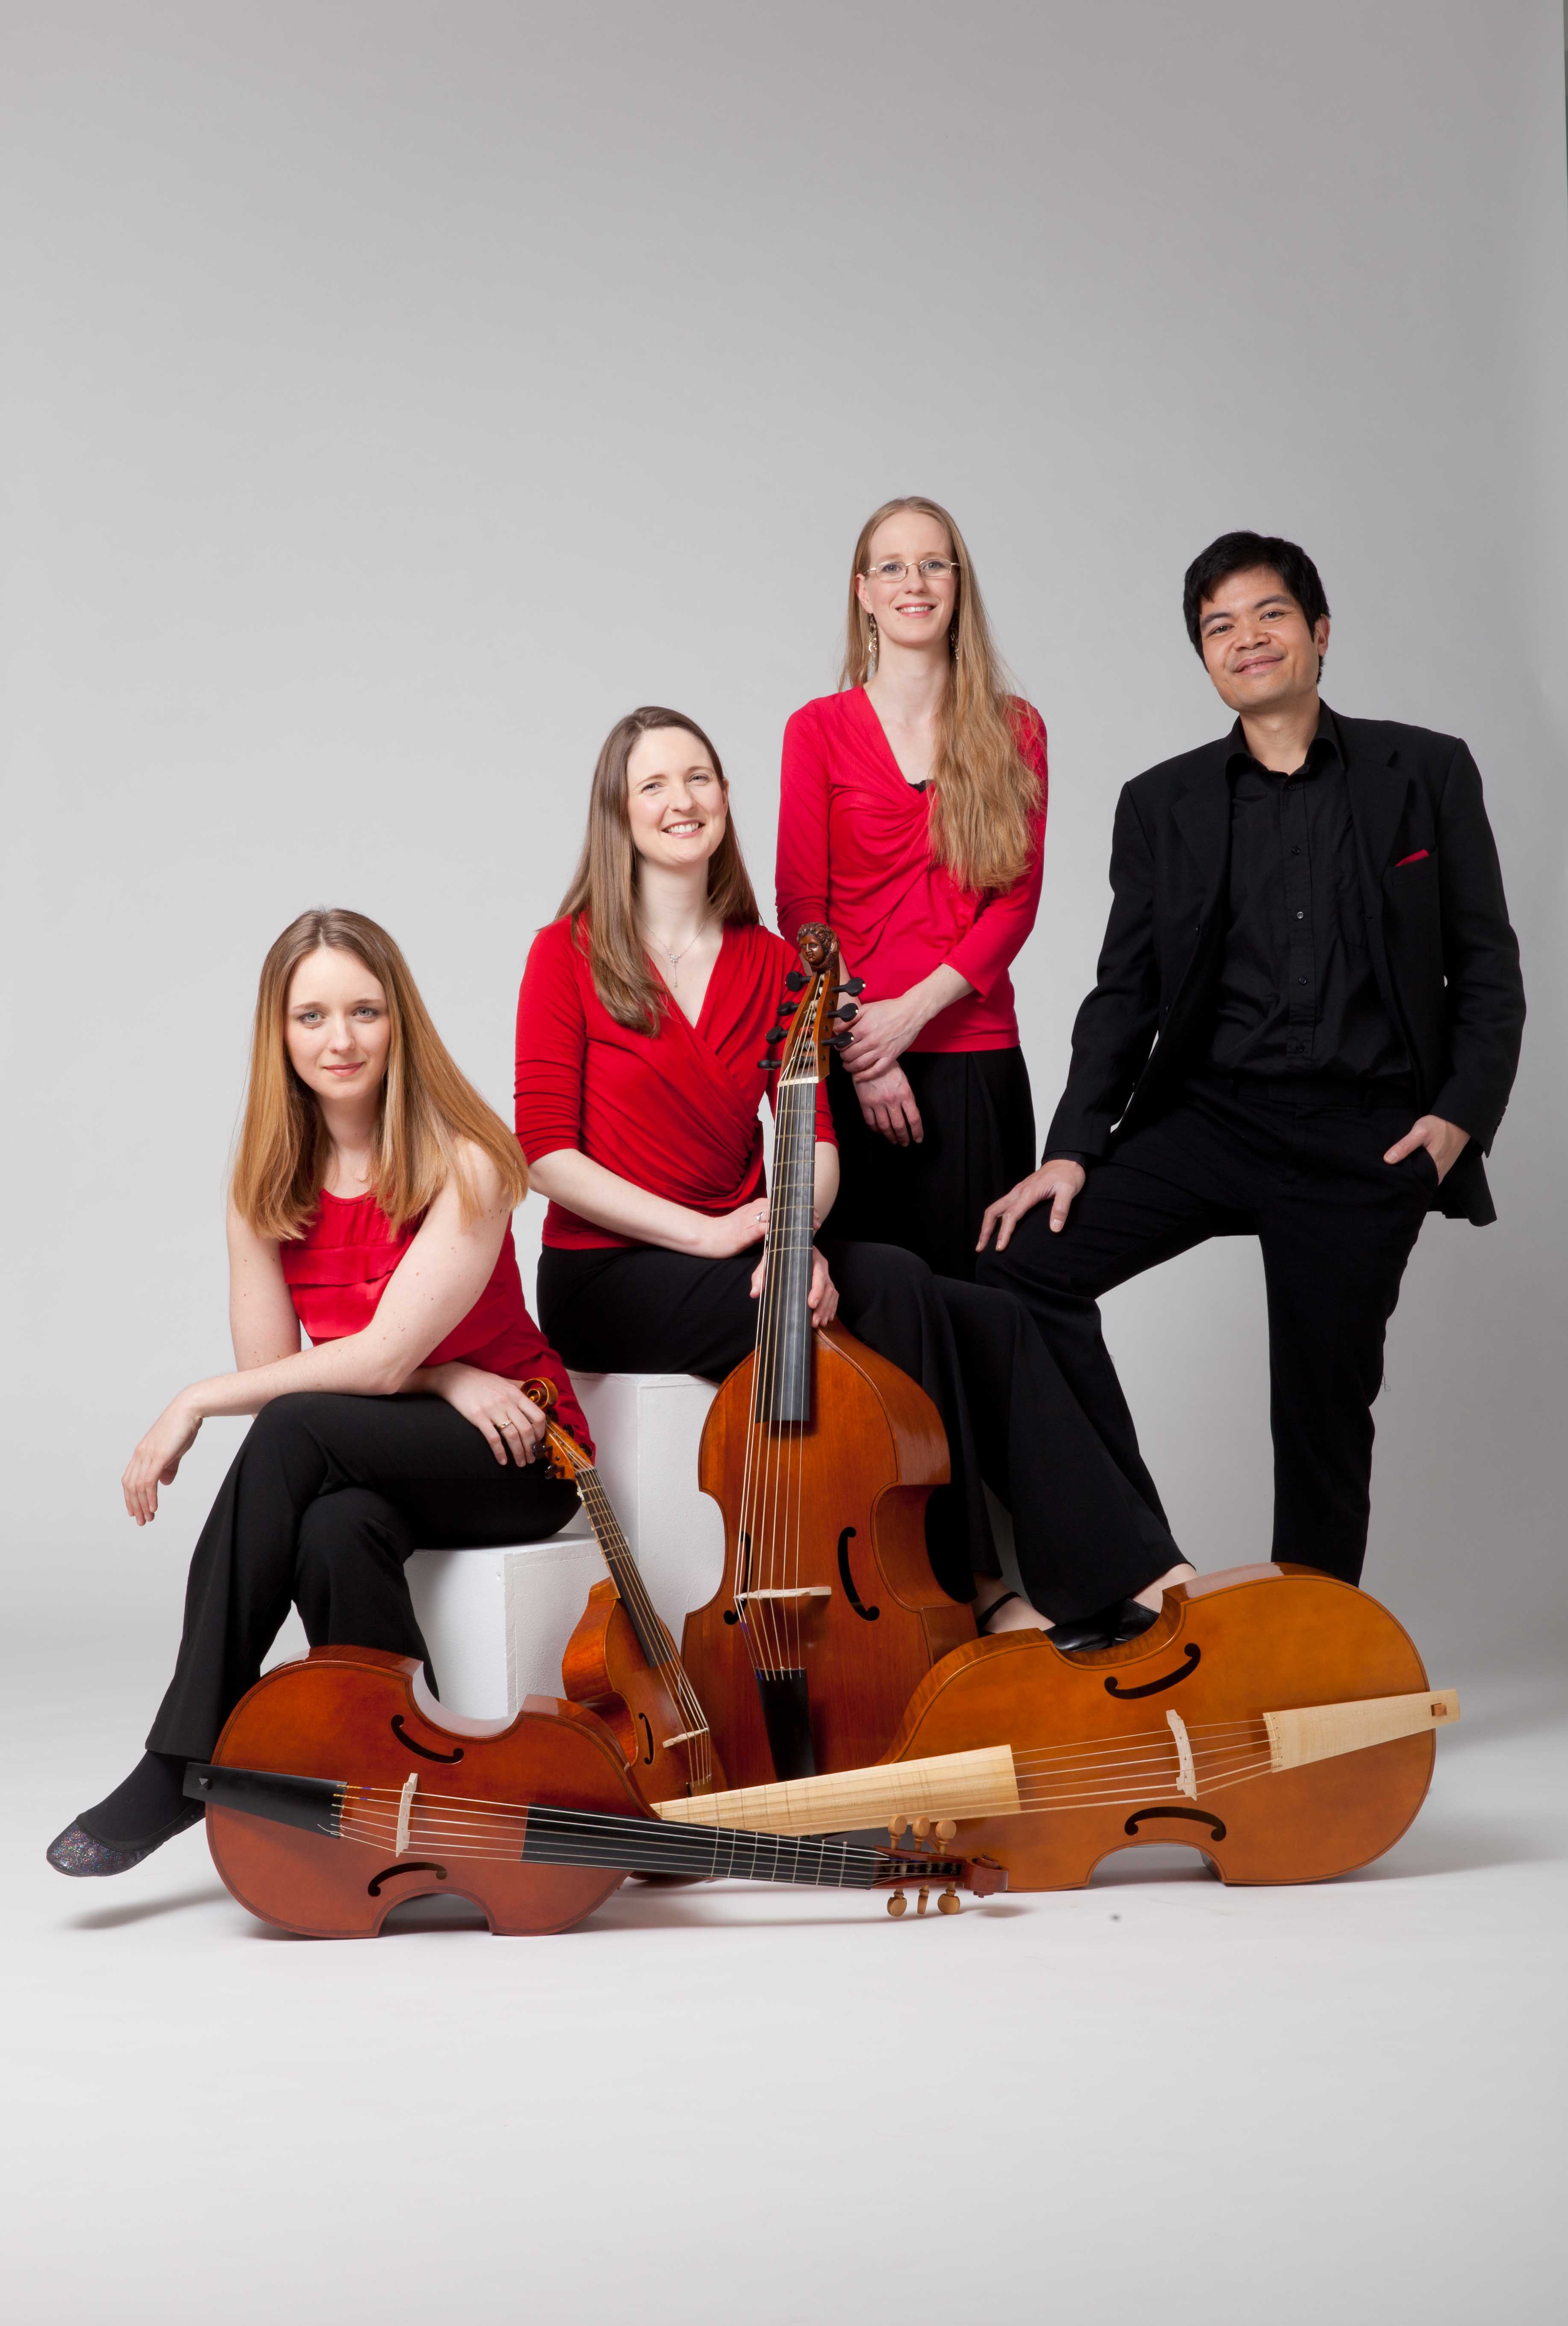 The Chelys Consort, performing on 12th